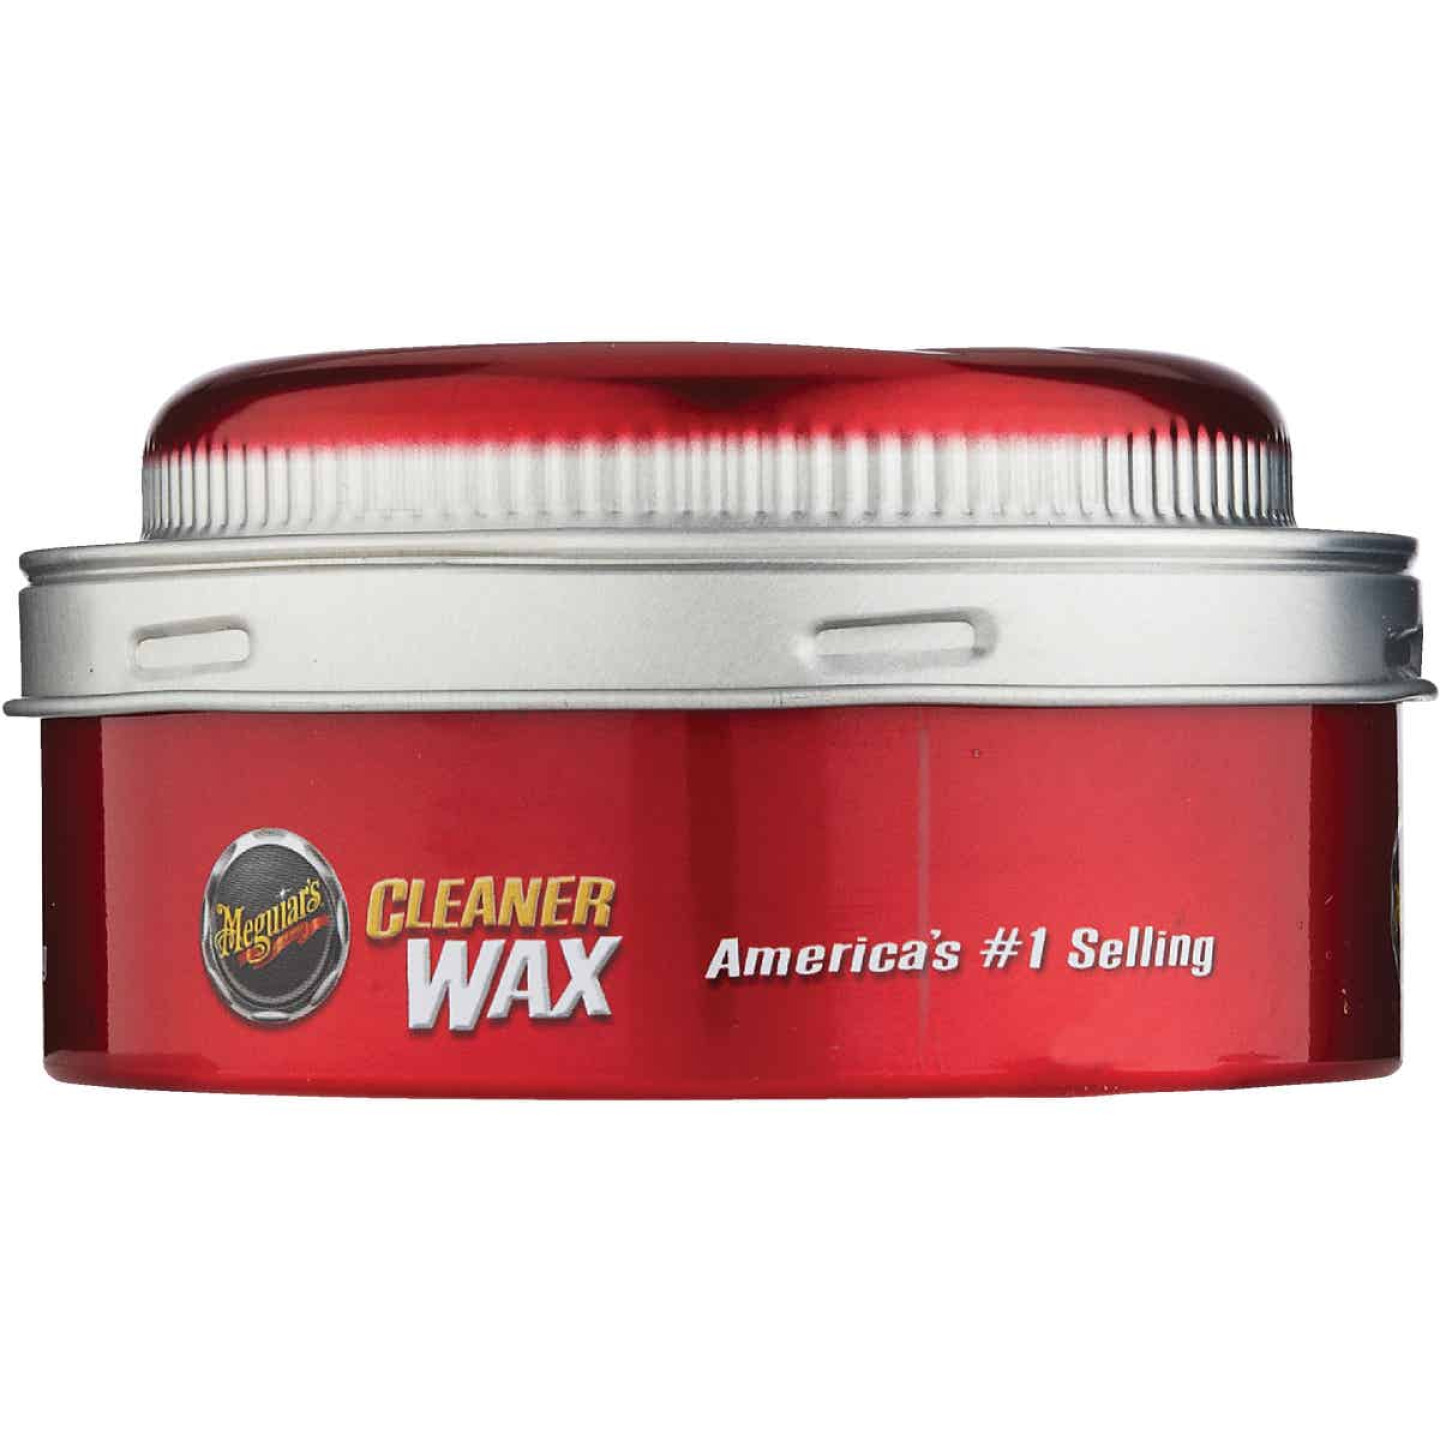 Meguiars 11 Oz. Paste Car Wax Image 2